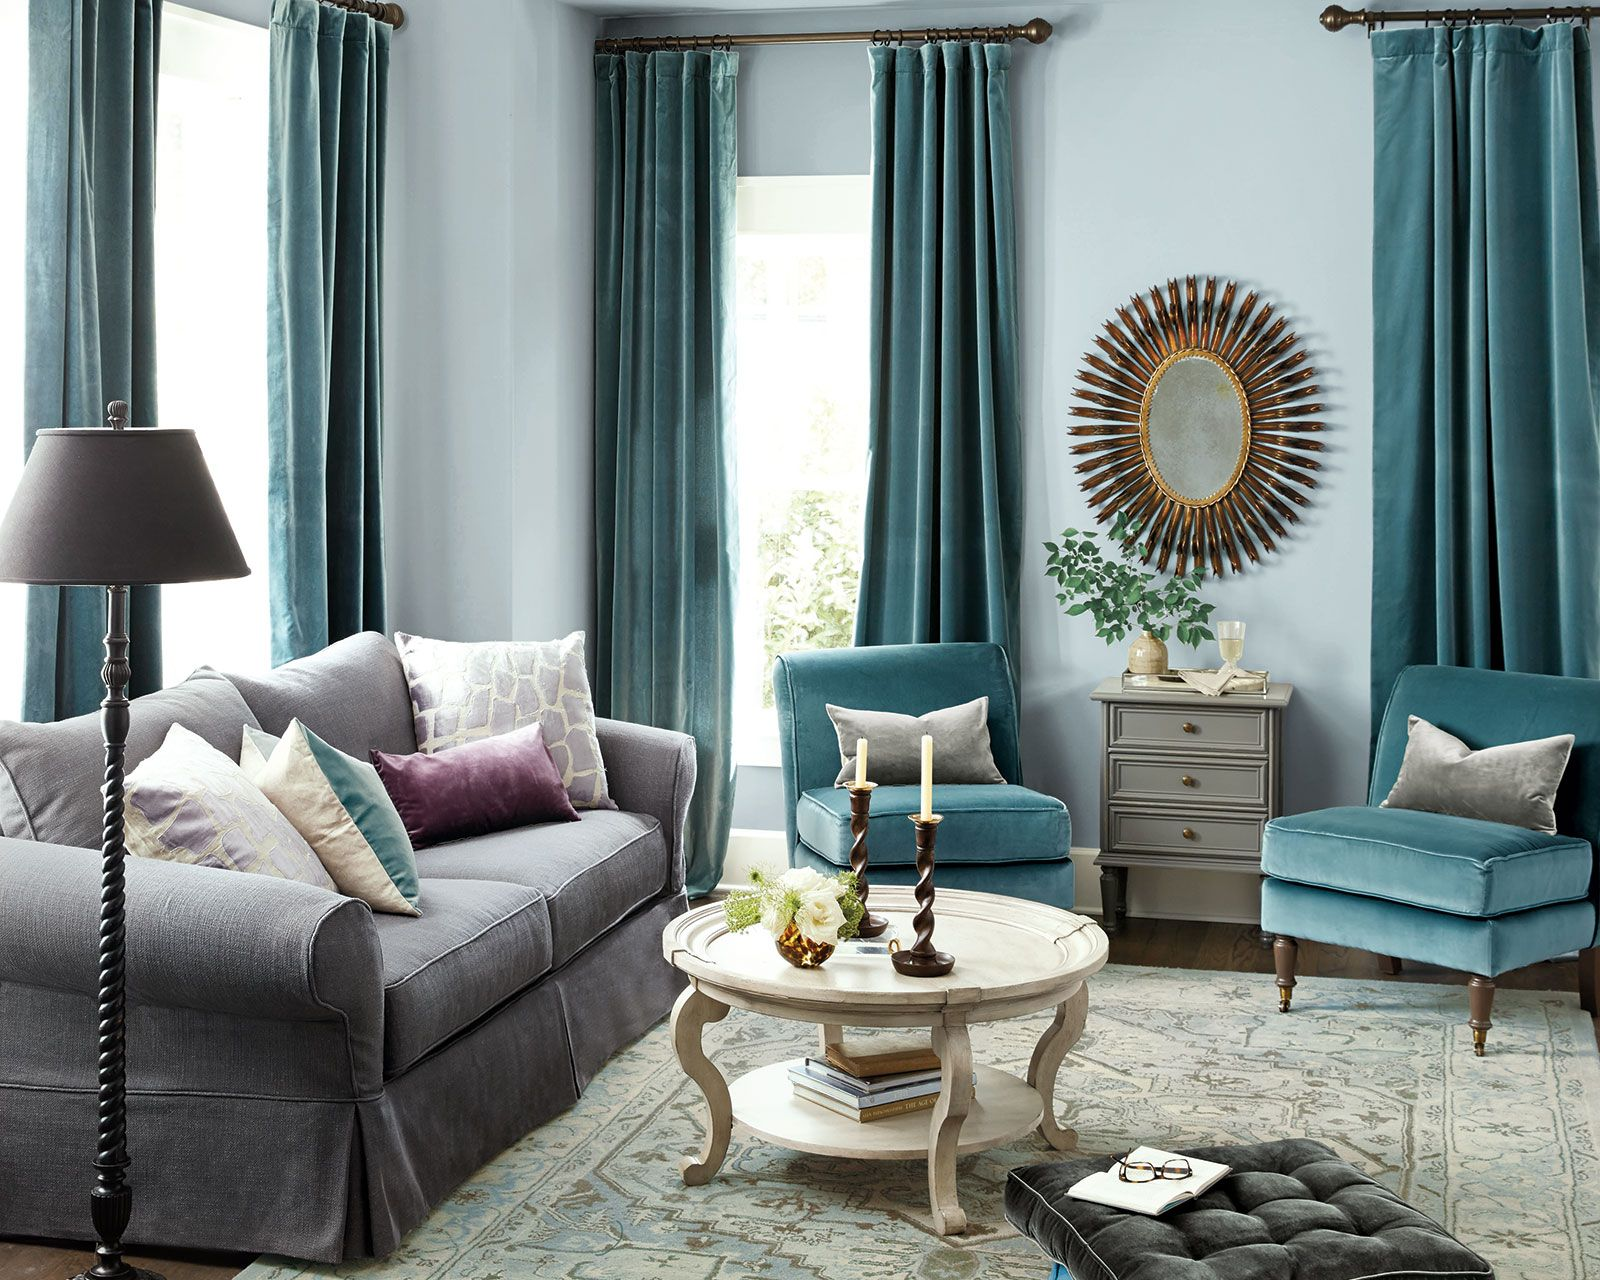 8 Methods to Add Much more Seating to Your Space | Furniture Design ...